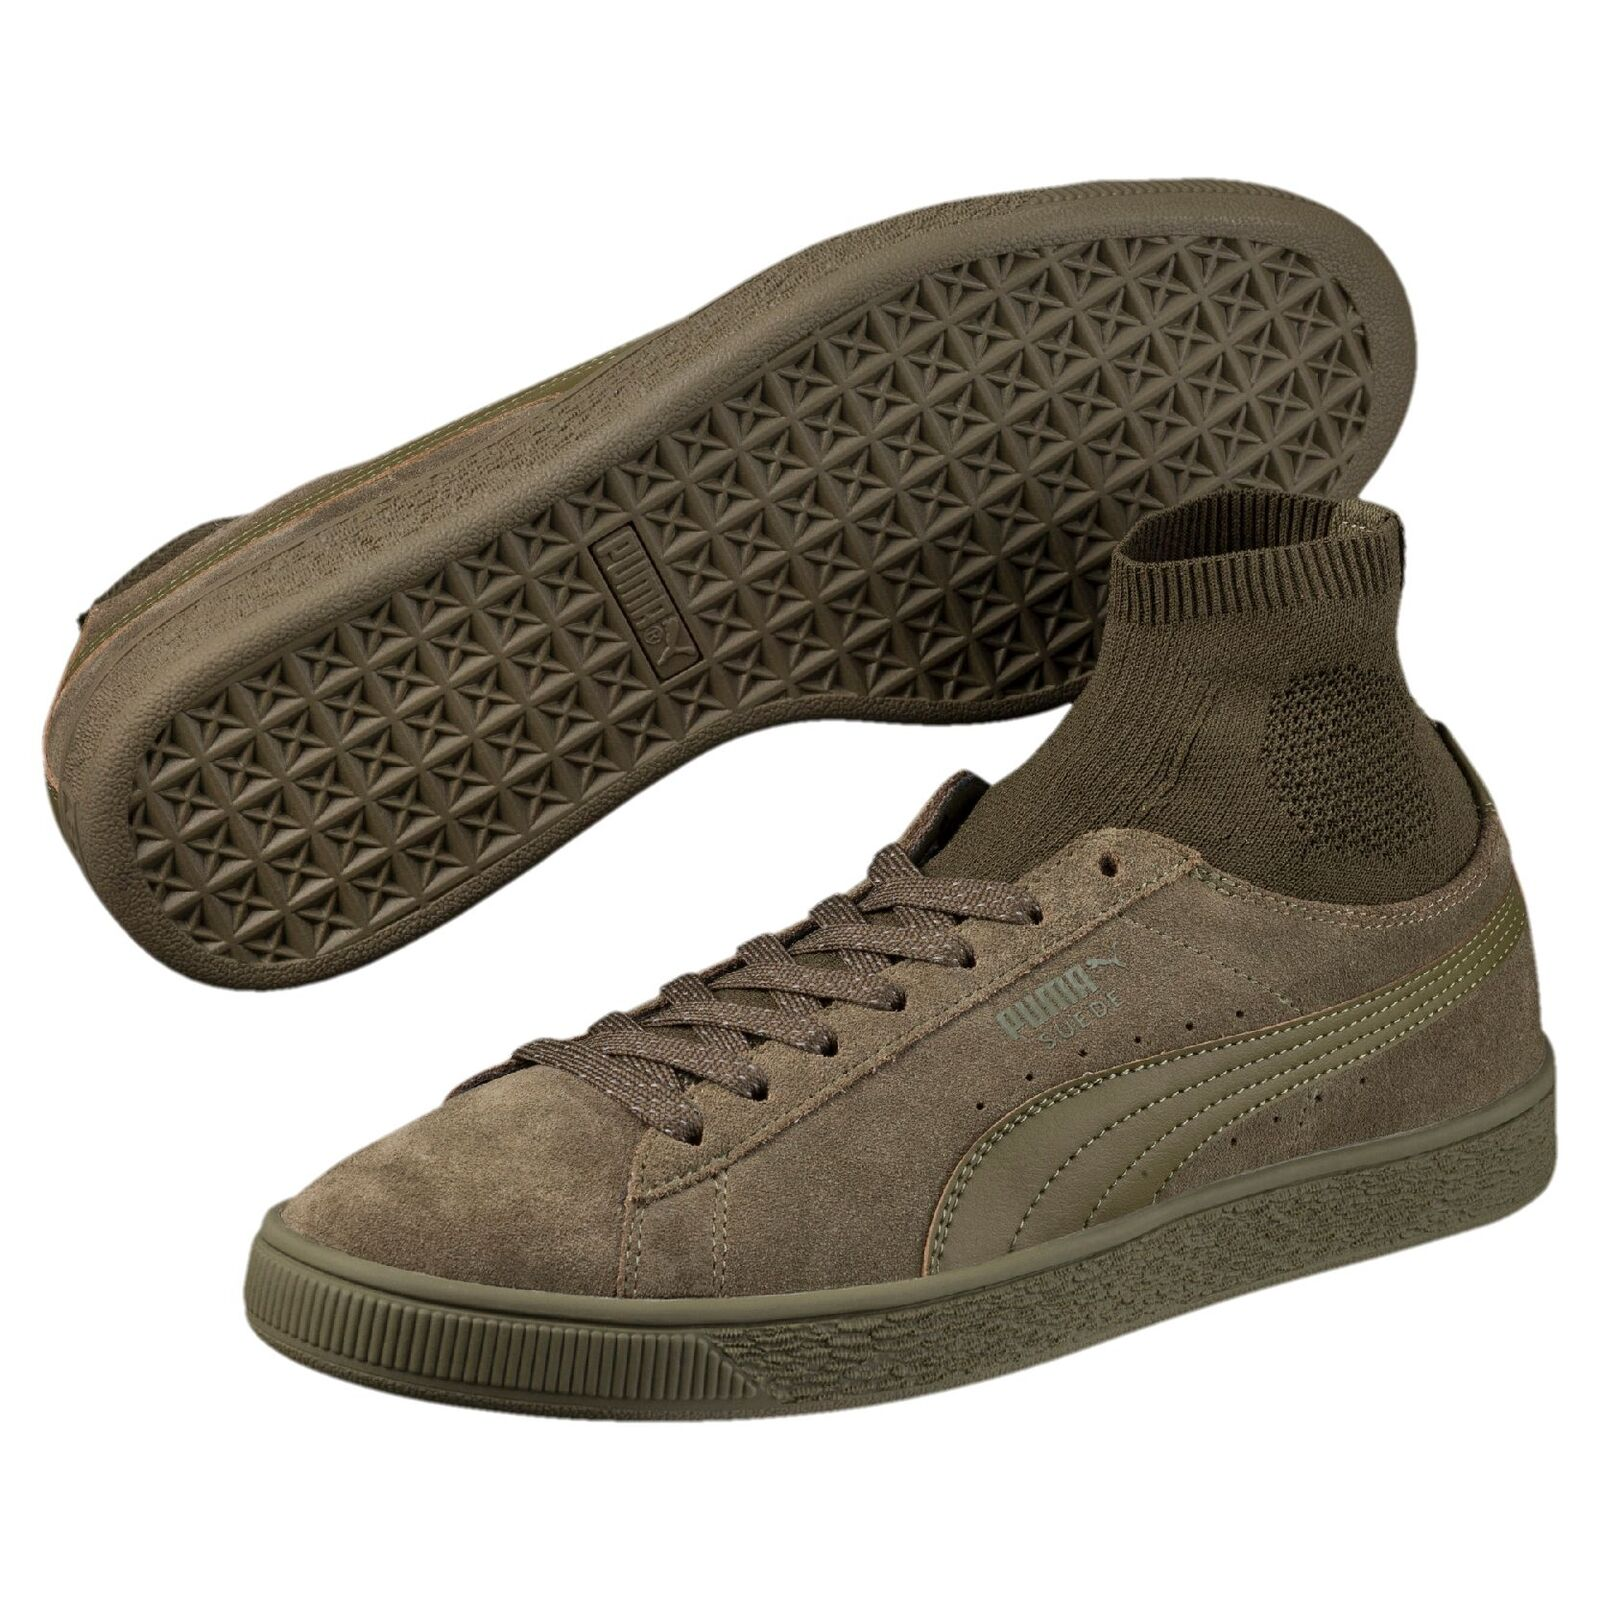 PUMA Suede Classic Sock Trainers Hombre Zapatos Clásicos del deporte Nuevo The latest discount shoes for men and women